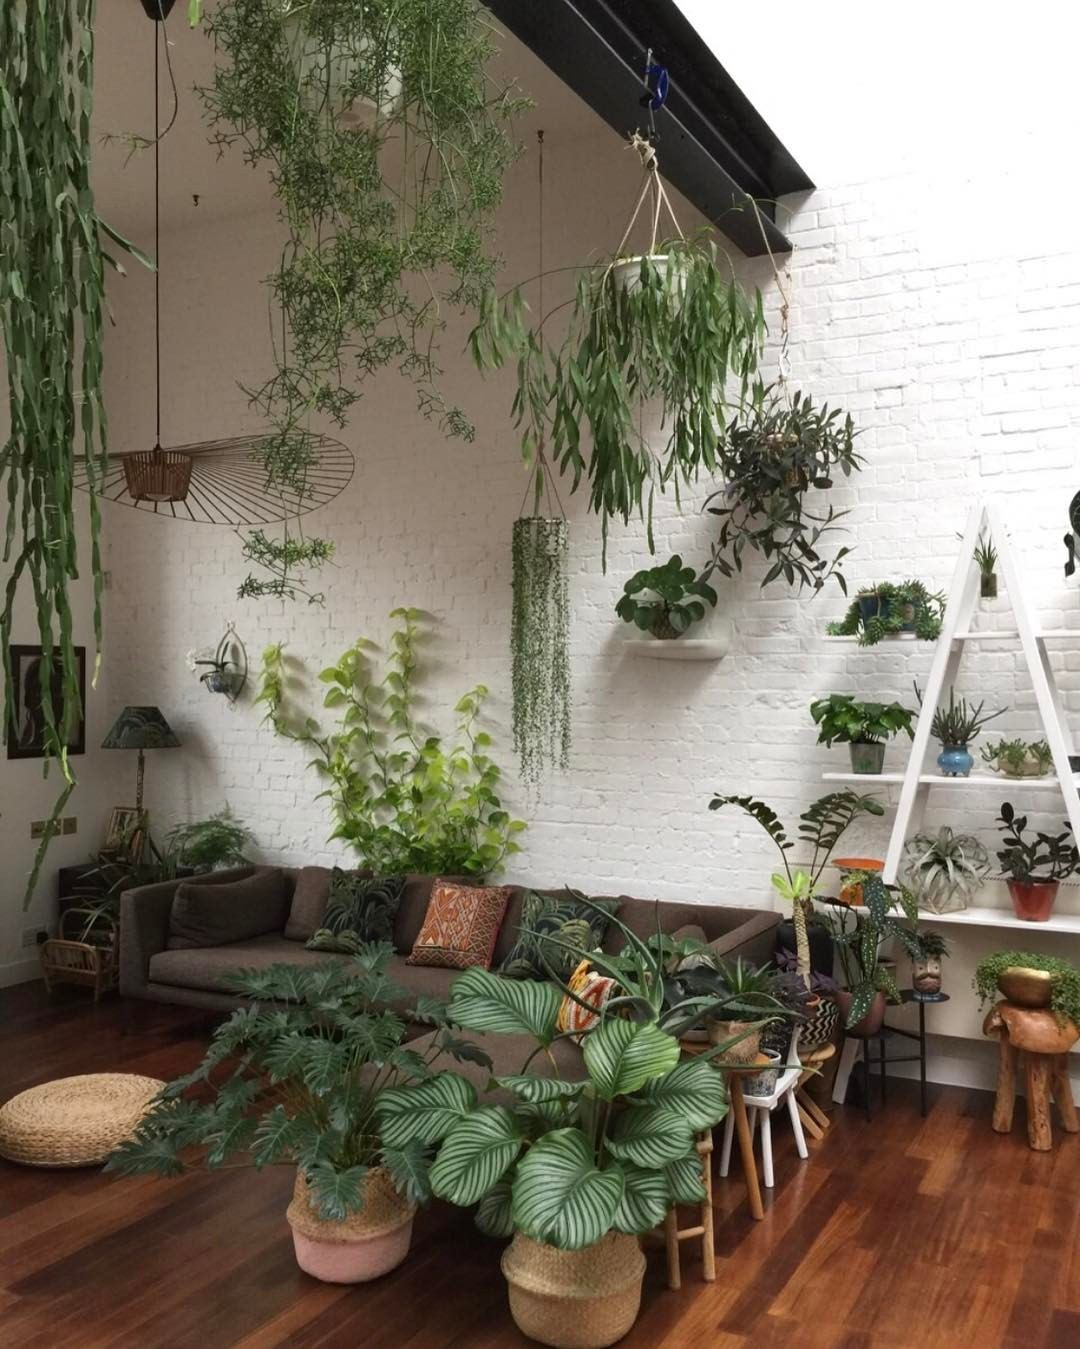 Indoor Apartment Plants: Pin By MmeCamille On Favorite Places & Spaces